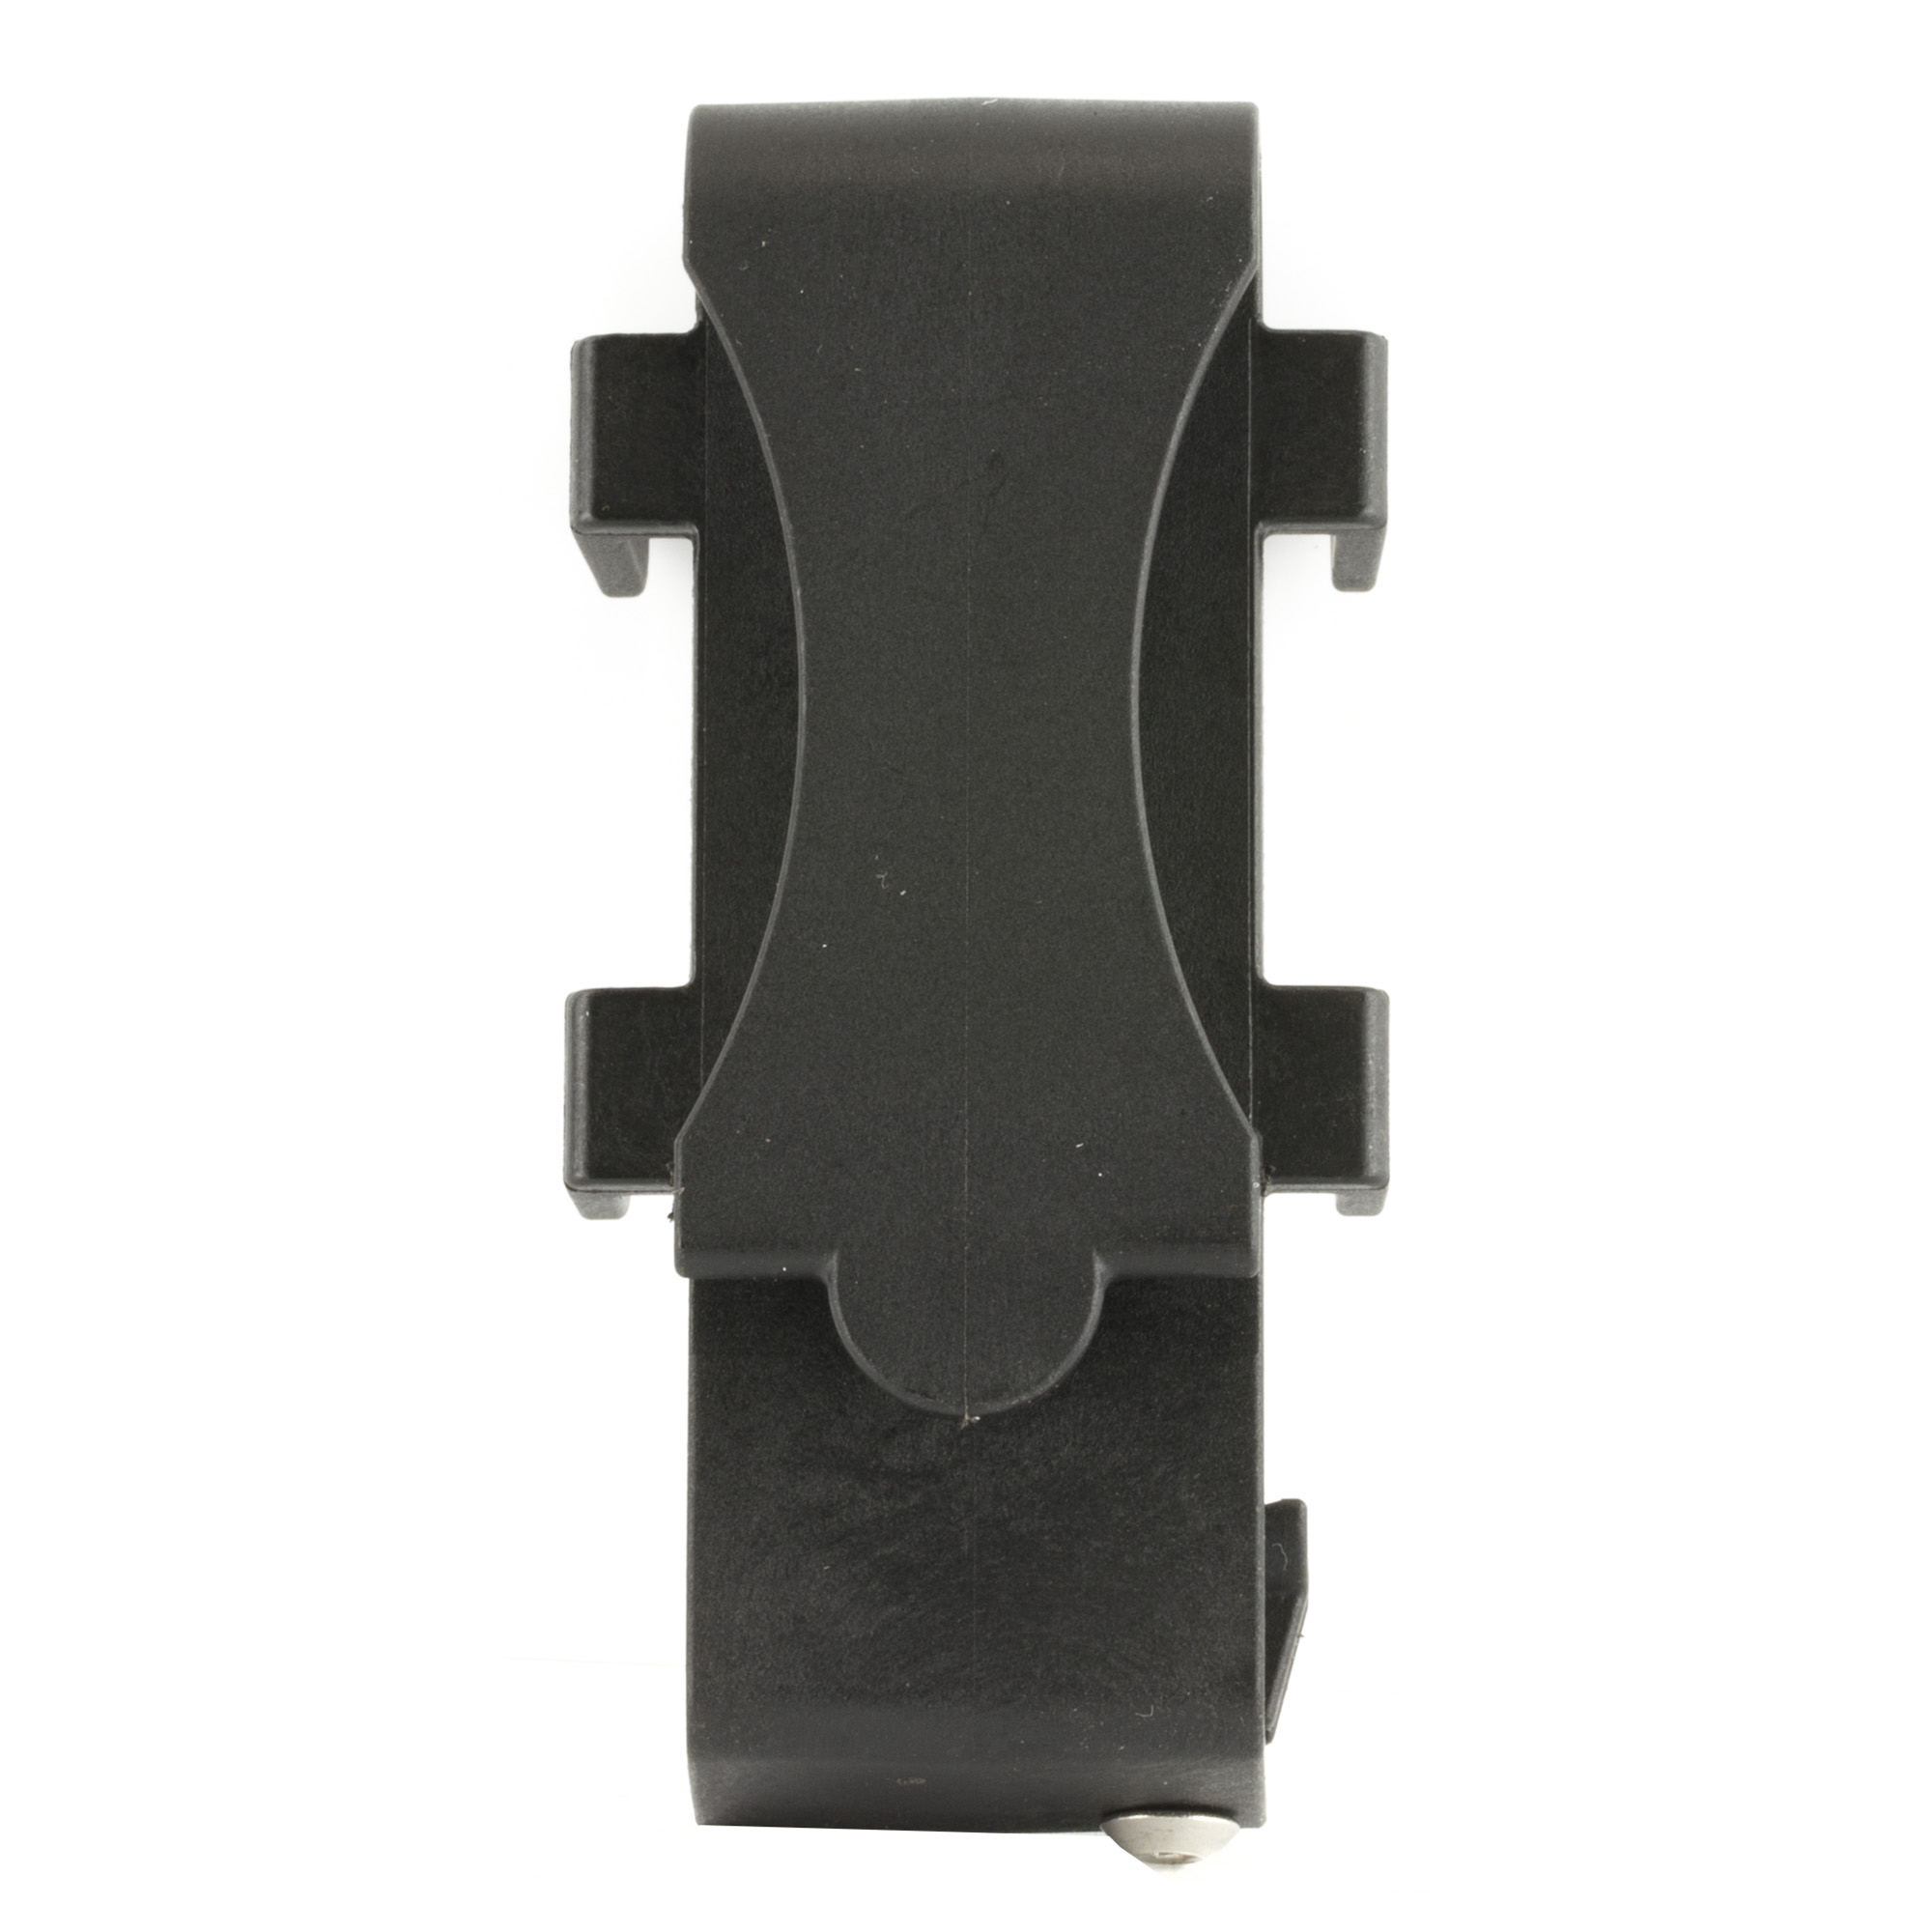 Versacry Mag Carrier Ds 9mm